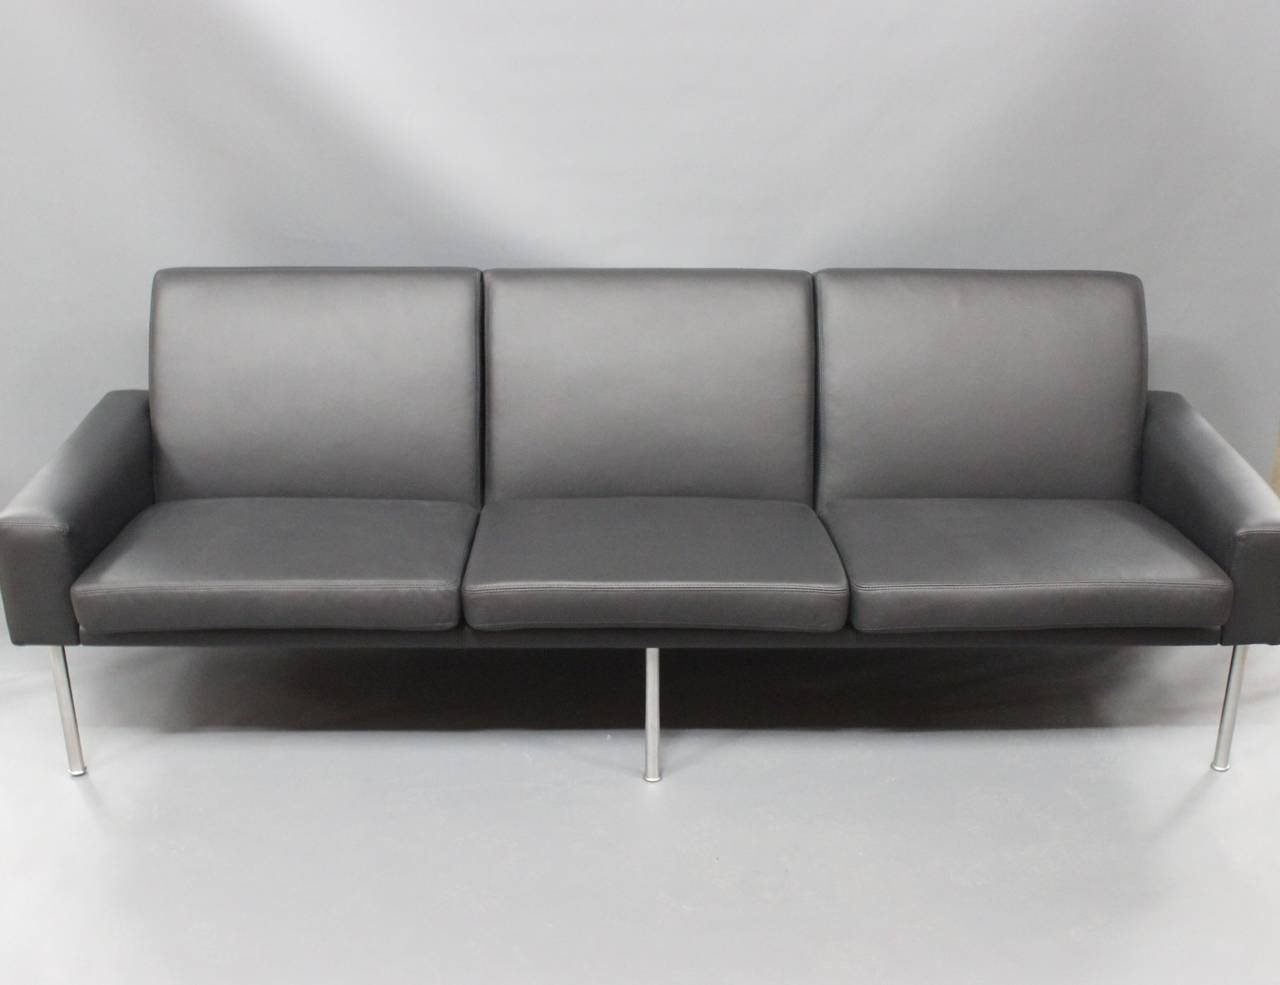 Model 34/3 3 Seater Sofa By Hans J. Wegner, 1960 For Sale At Pamono